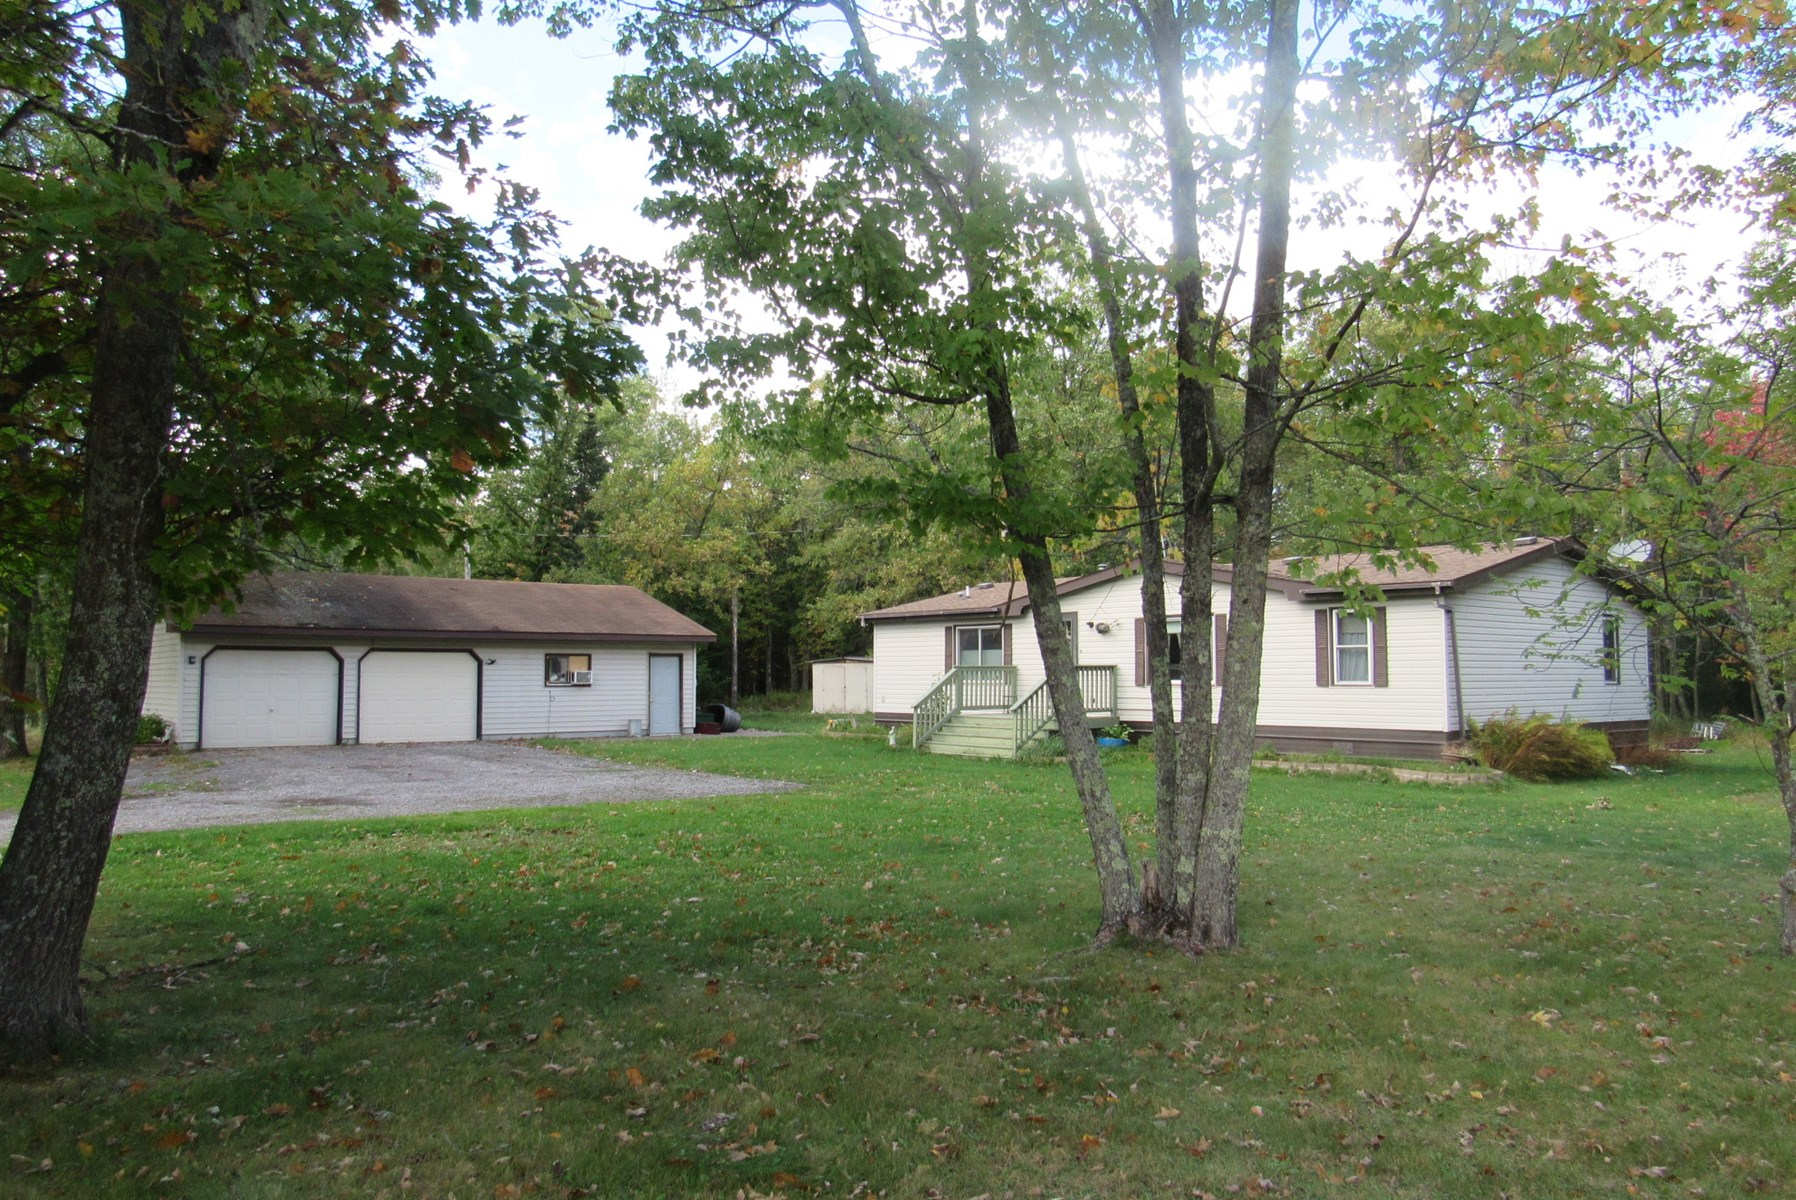 Private Country Home on 5 Acres for sale in Pine County MN